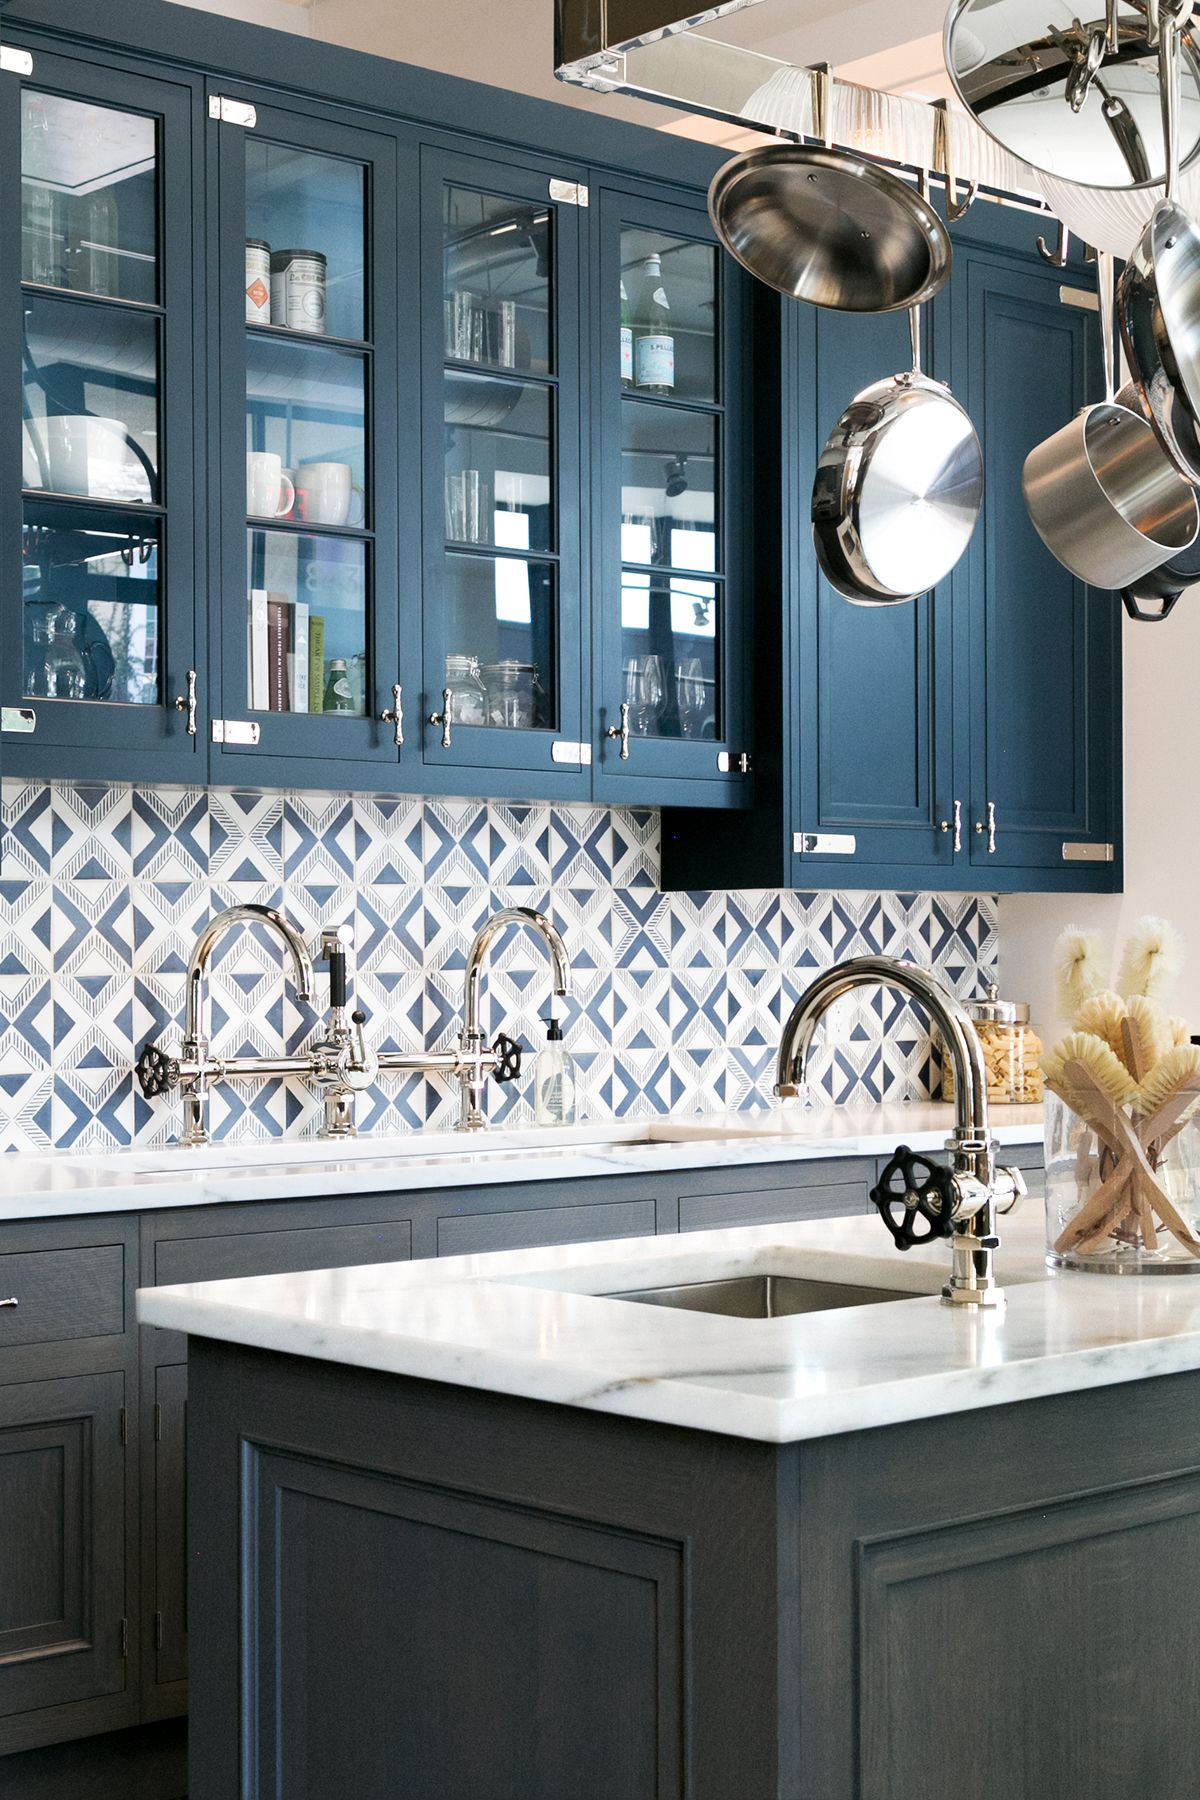 Luxe Kitchen Fixtures Fittings At Waterworks Los Angeles